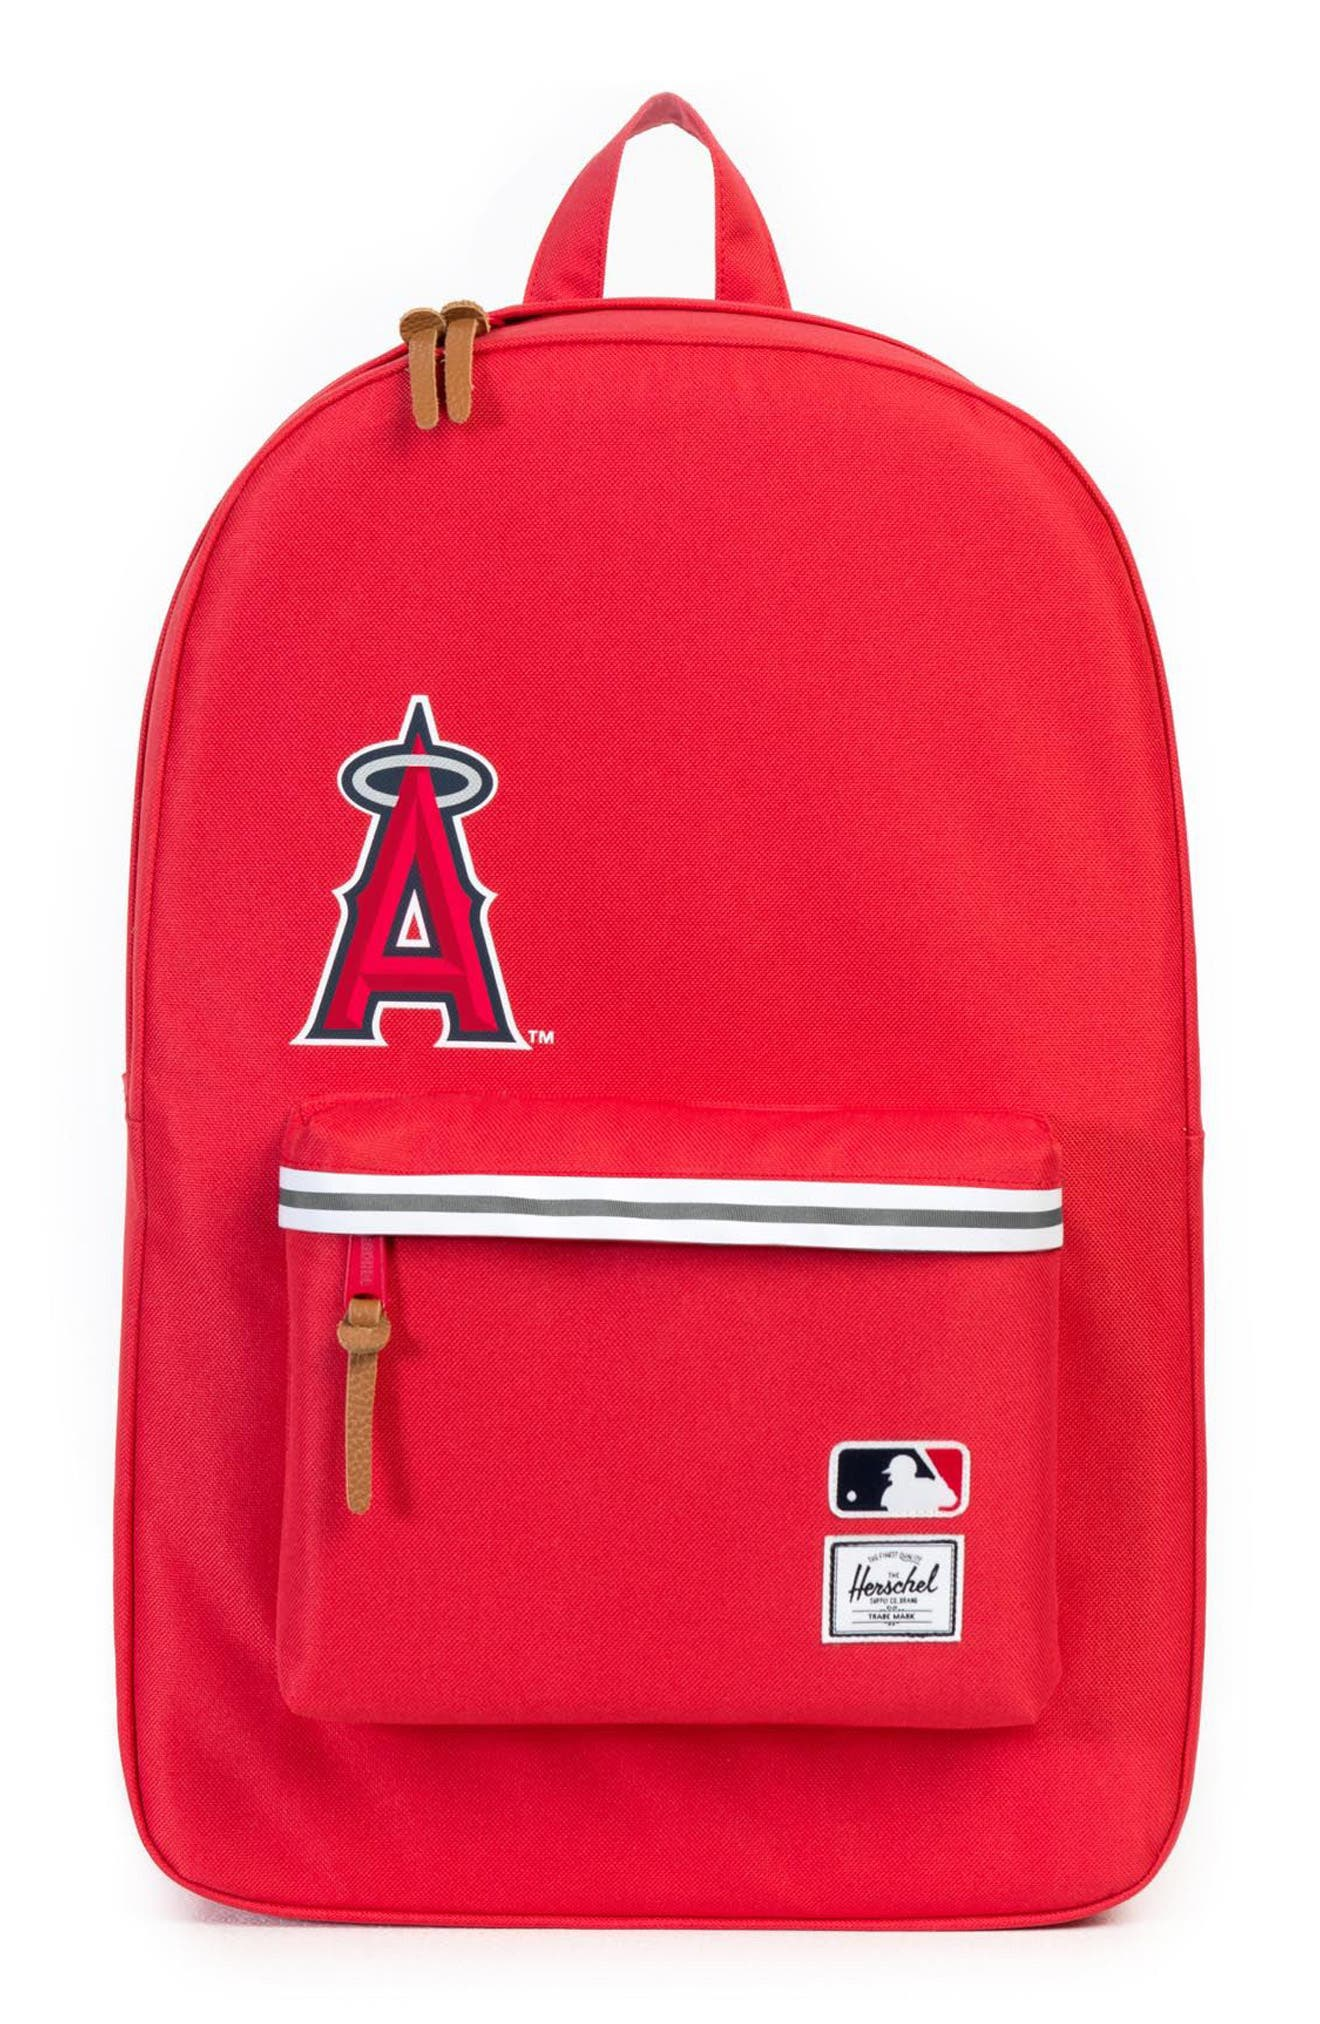 Heritage - MLB American League Backpack,                             Main thumbnail 1, color,                             Los Angeles Angels